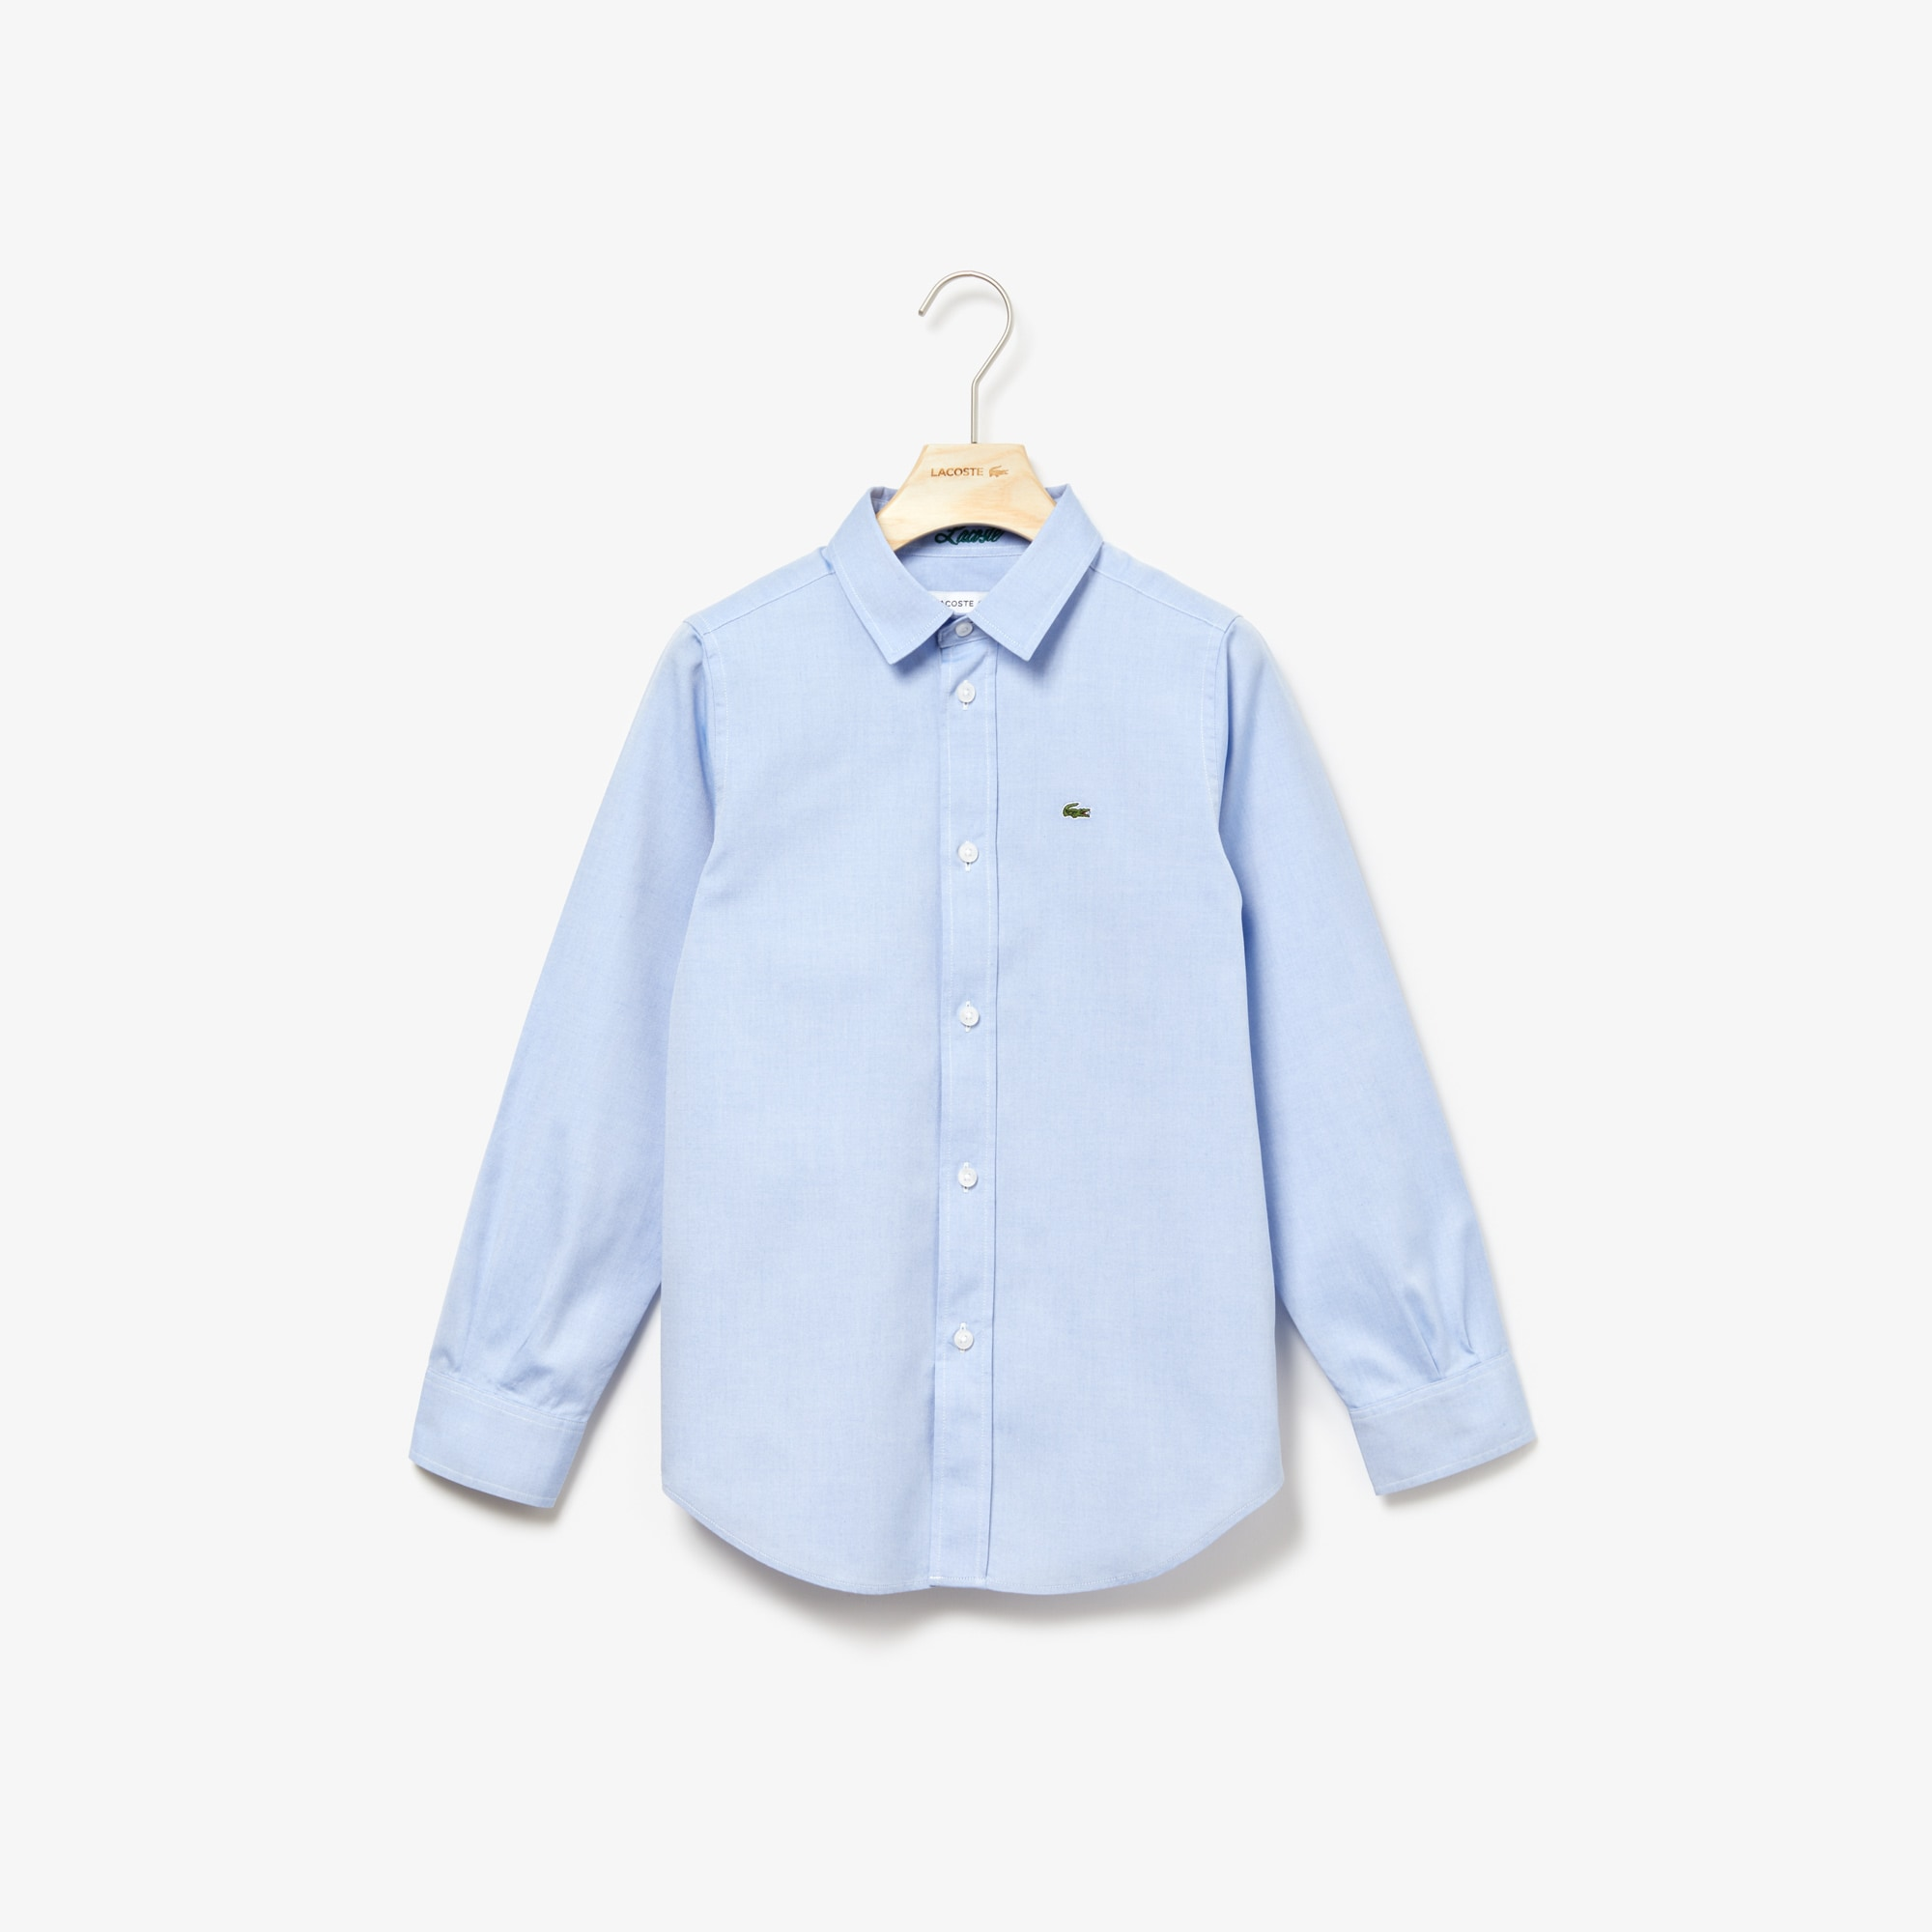 Kids' shirt in Oxford cotton knit